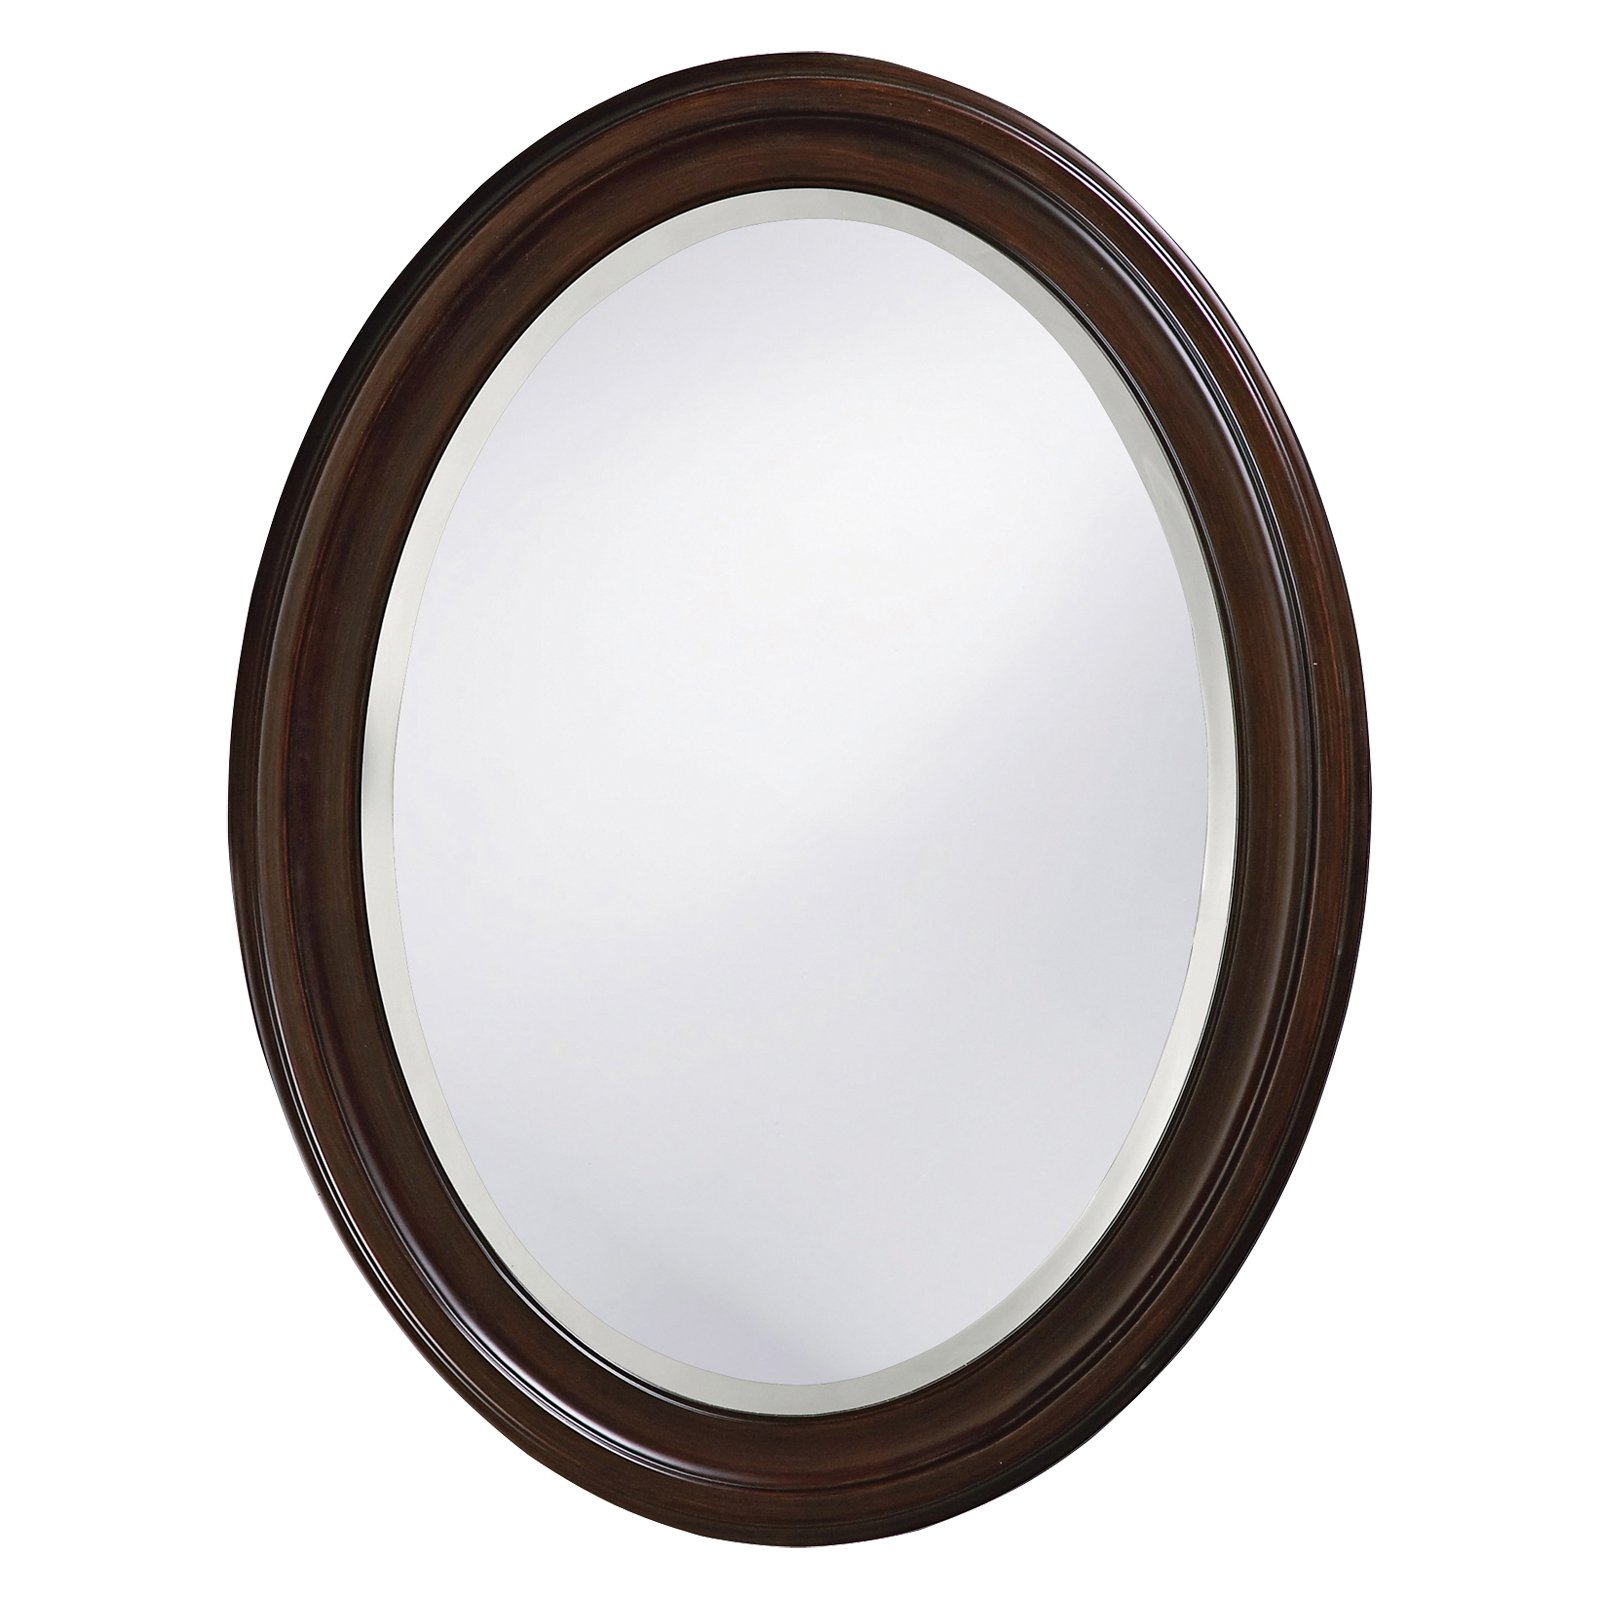 Belham Living Oval Wall Mirror Brown 25W x 33H in. by Howard Elliott